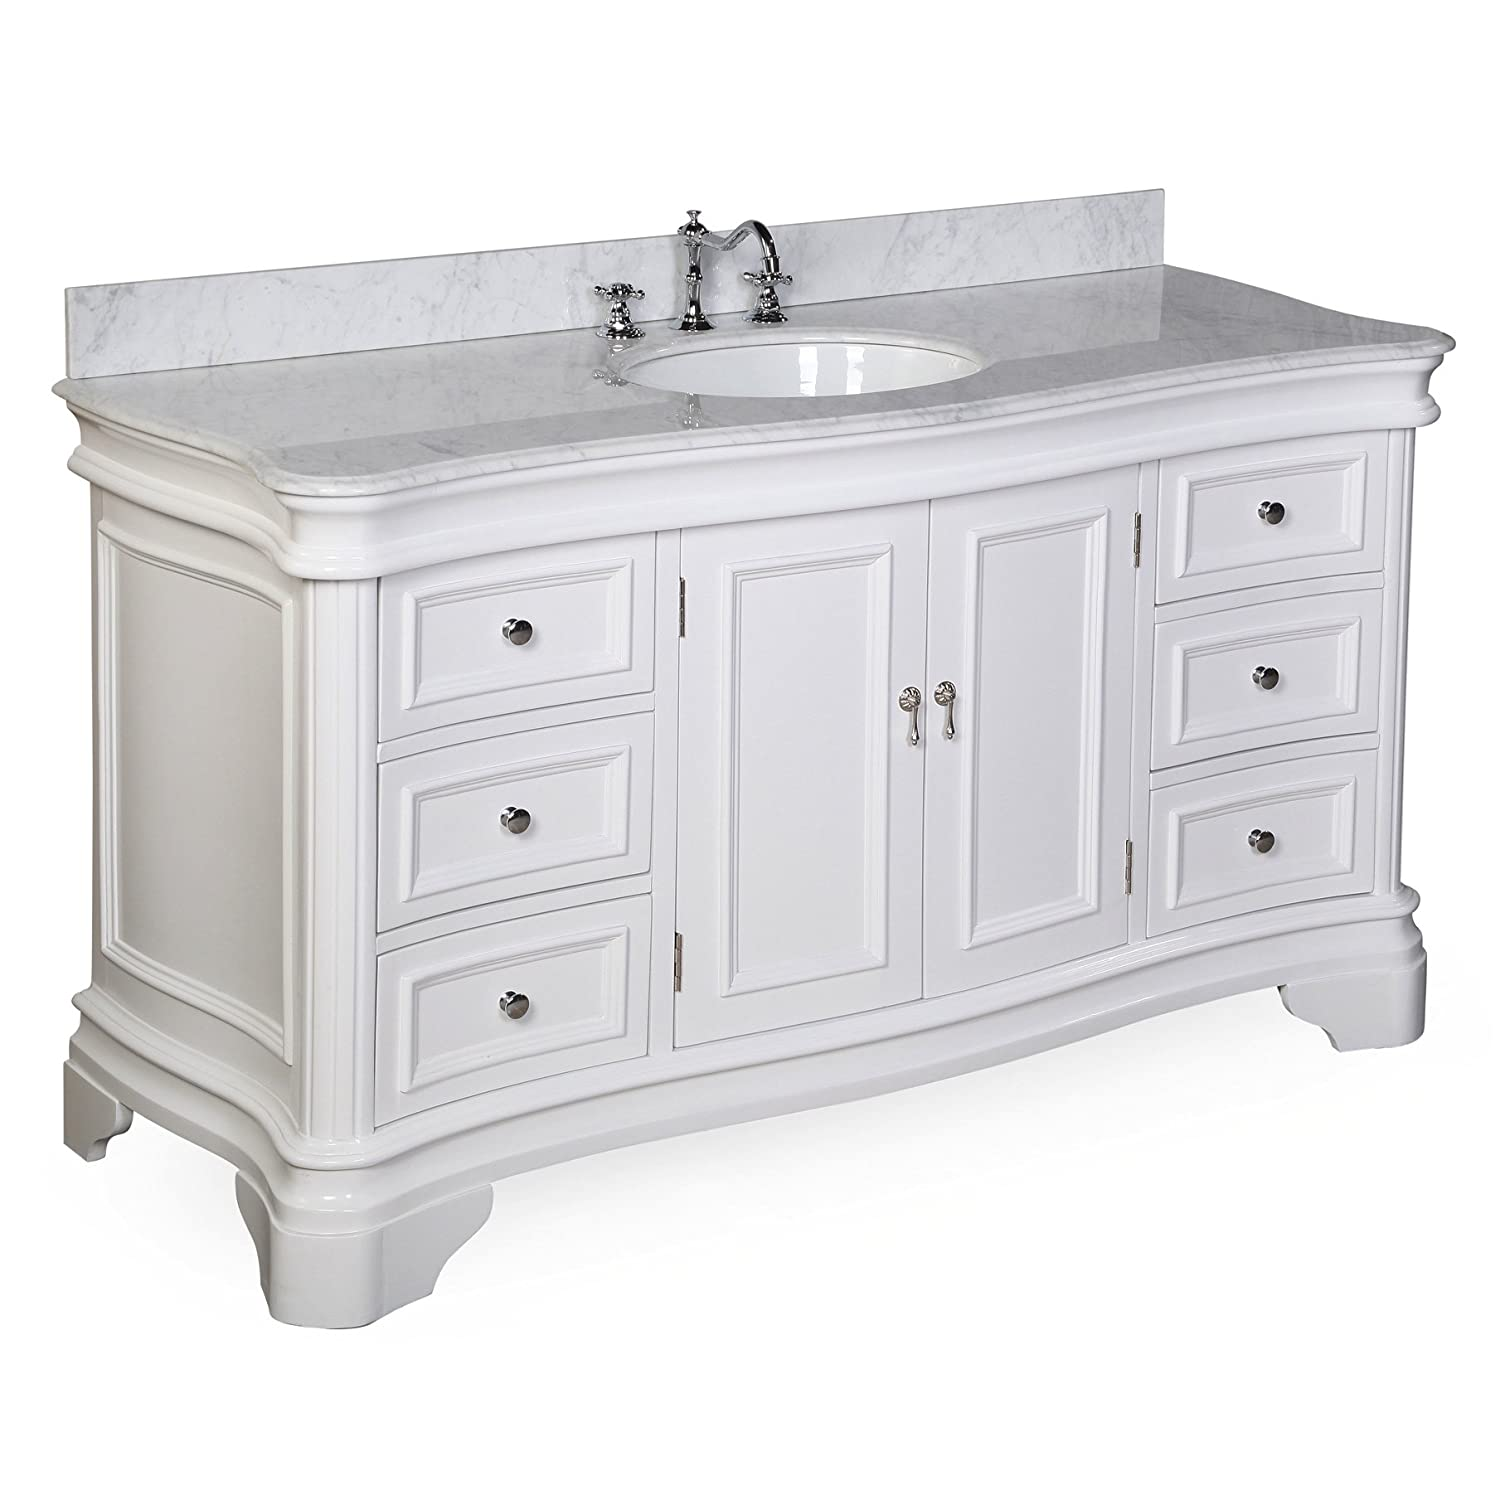 single white vanity with sink. Kitchen Bath Collection KBC A601WTCARR Katherine Single Sink Bathroom Vanity  with Marble Countertop Cabinet Soft Close Function and Undermount Ceramic